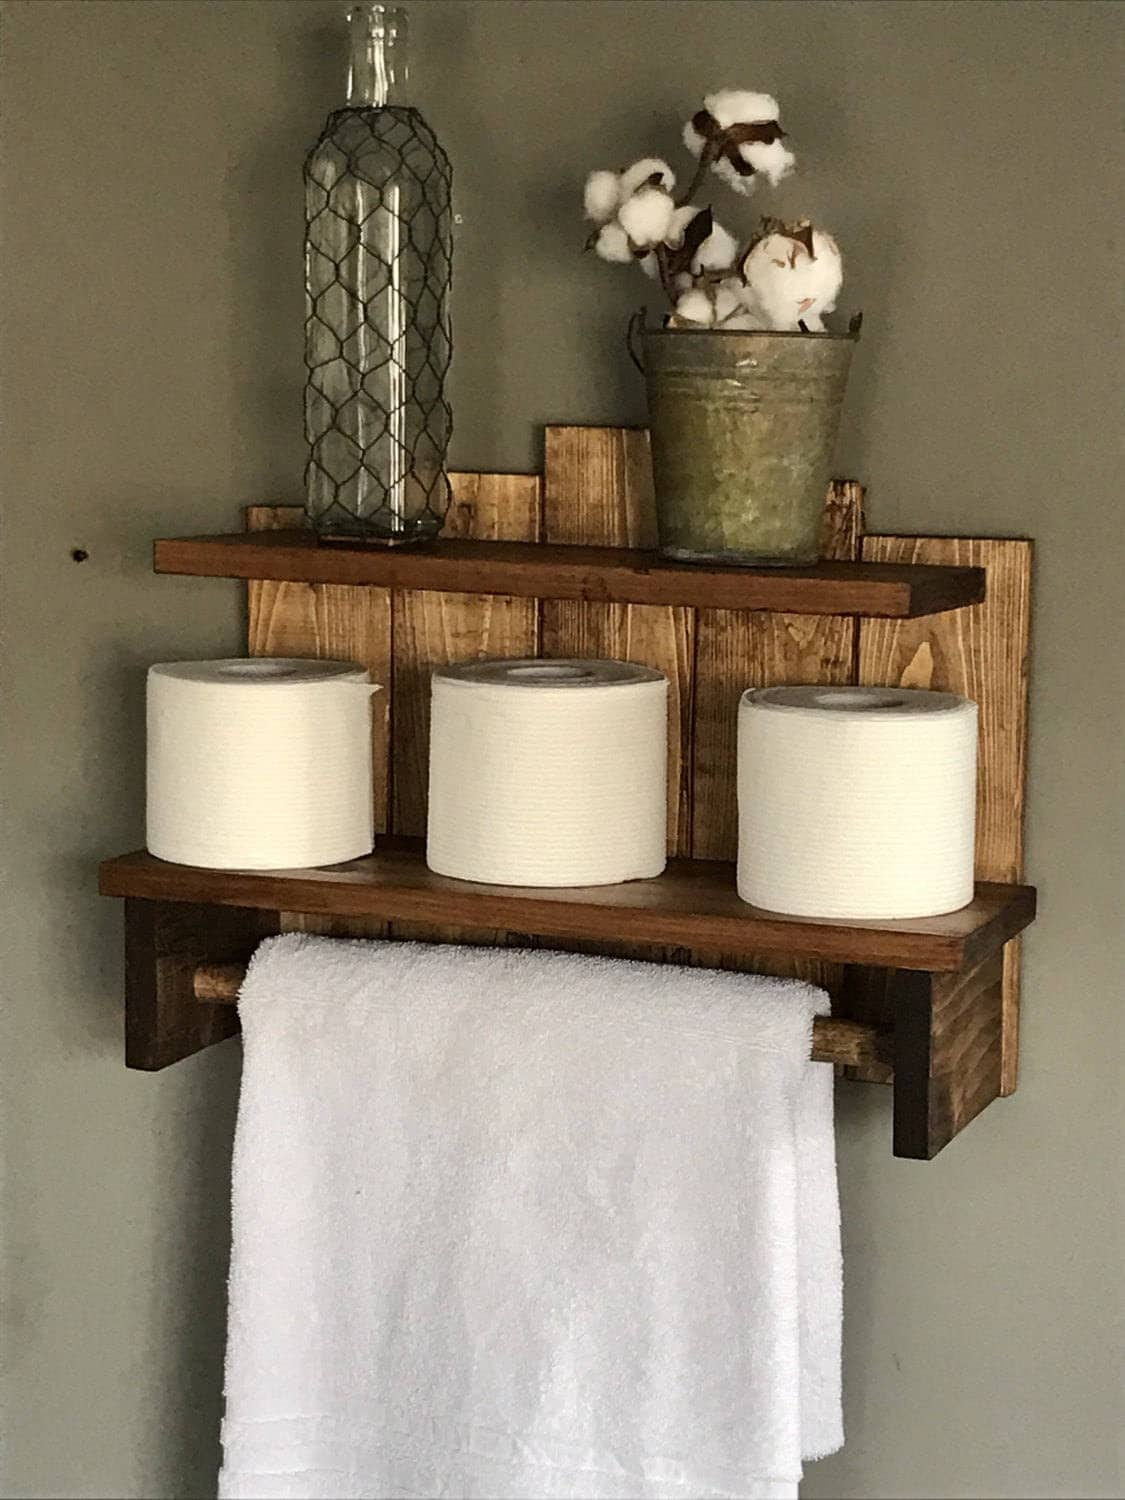 Bathroom Storage Rustic Towel Holder For Bath Toilet Paper Shelf